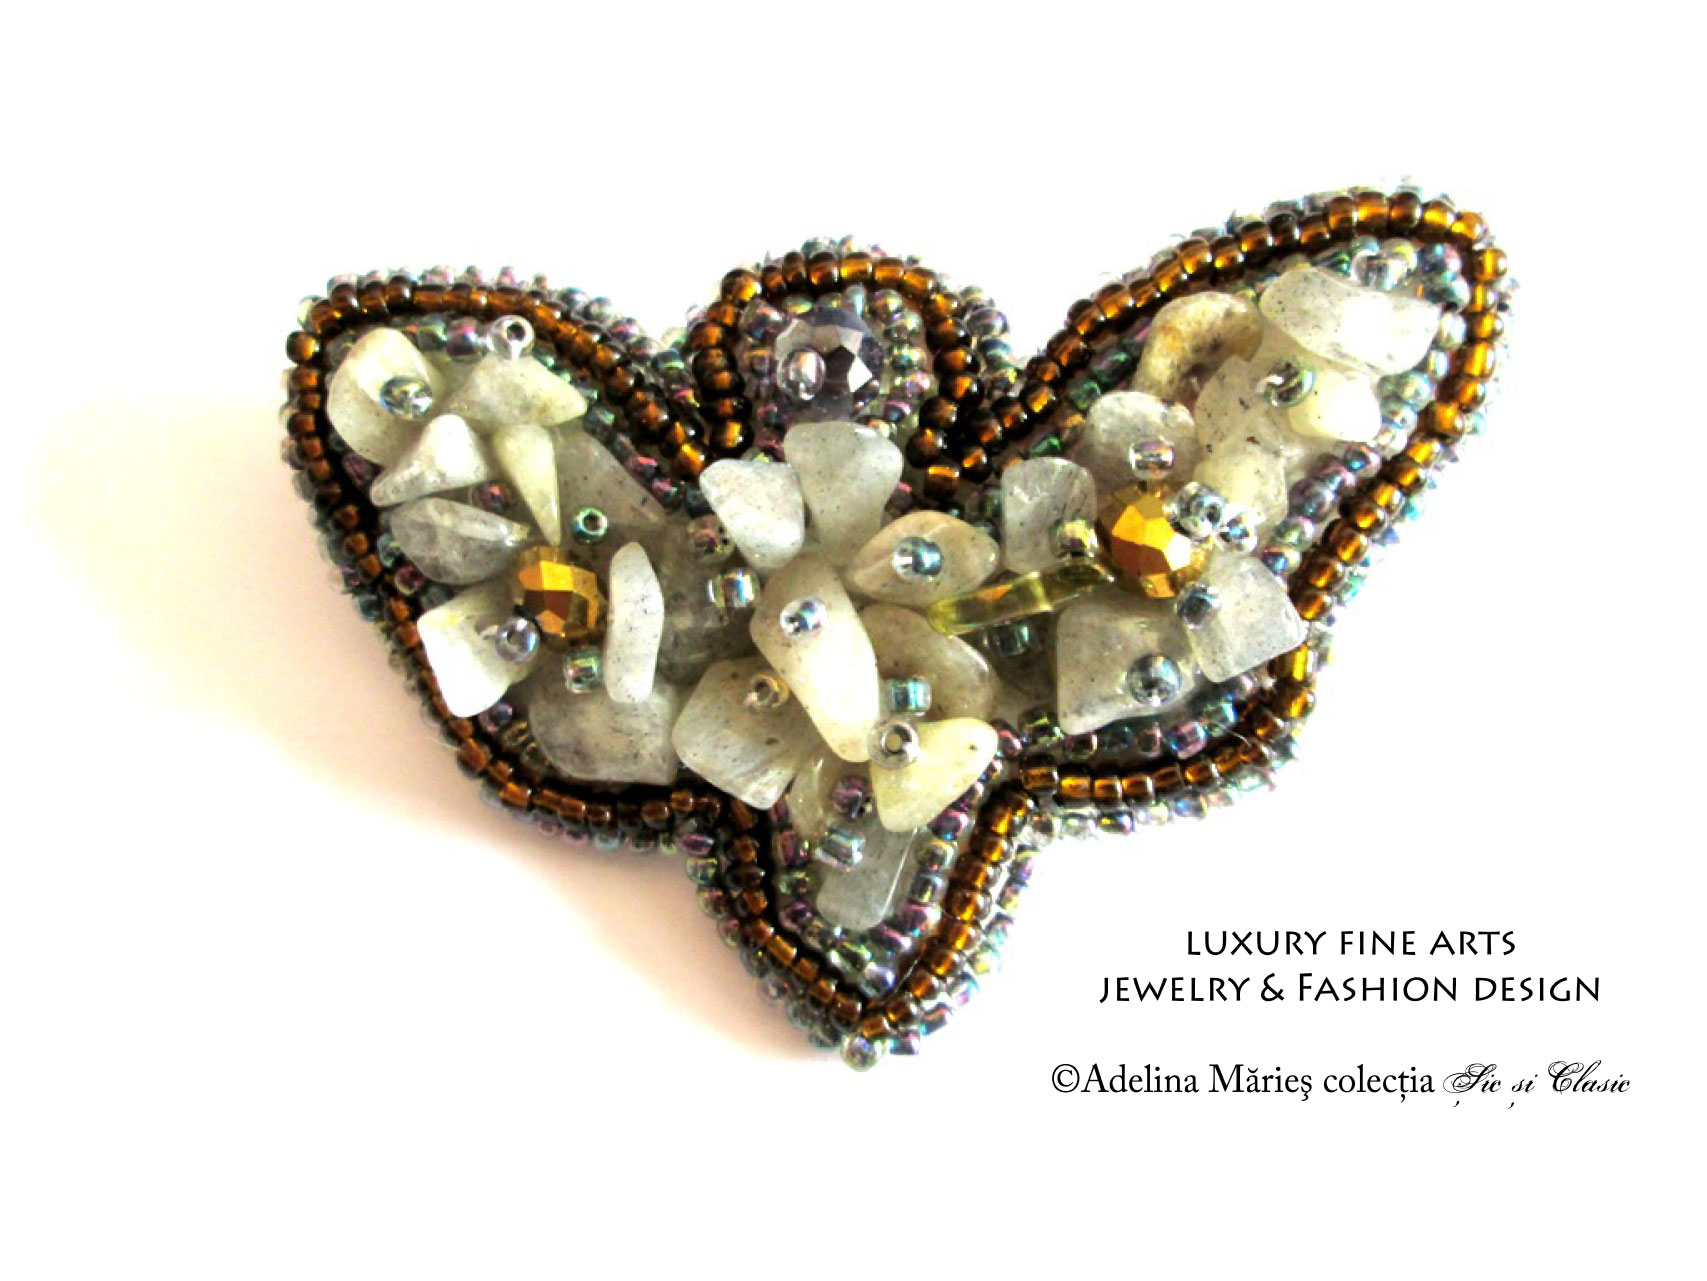 haute couture embroidery labradonit gemstone